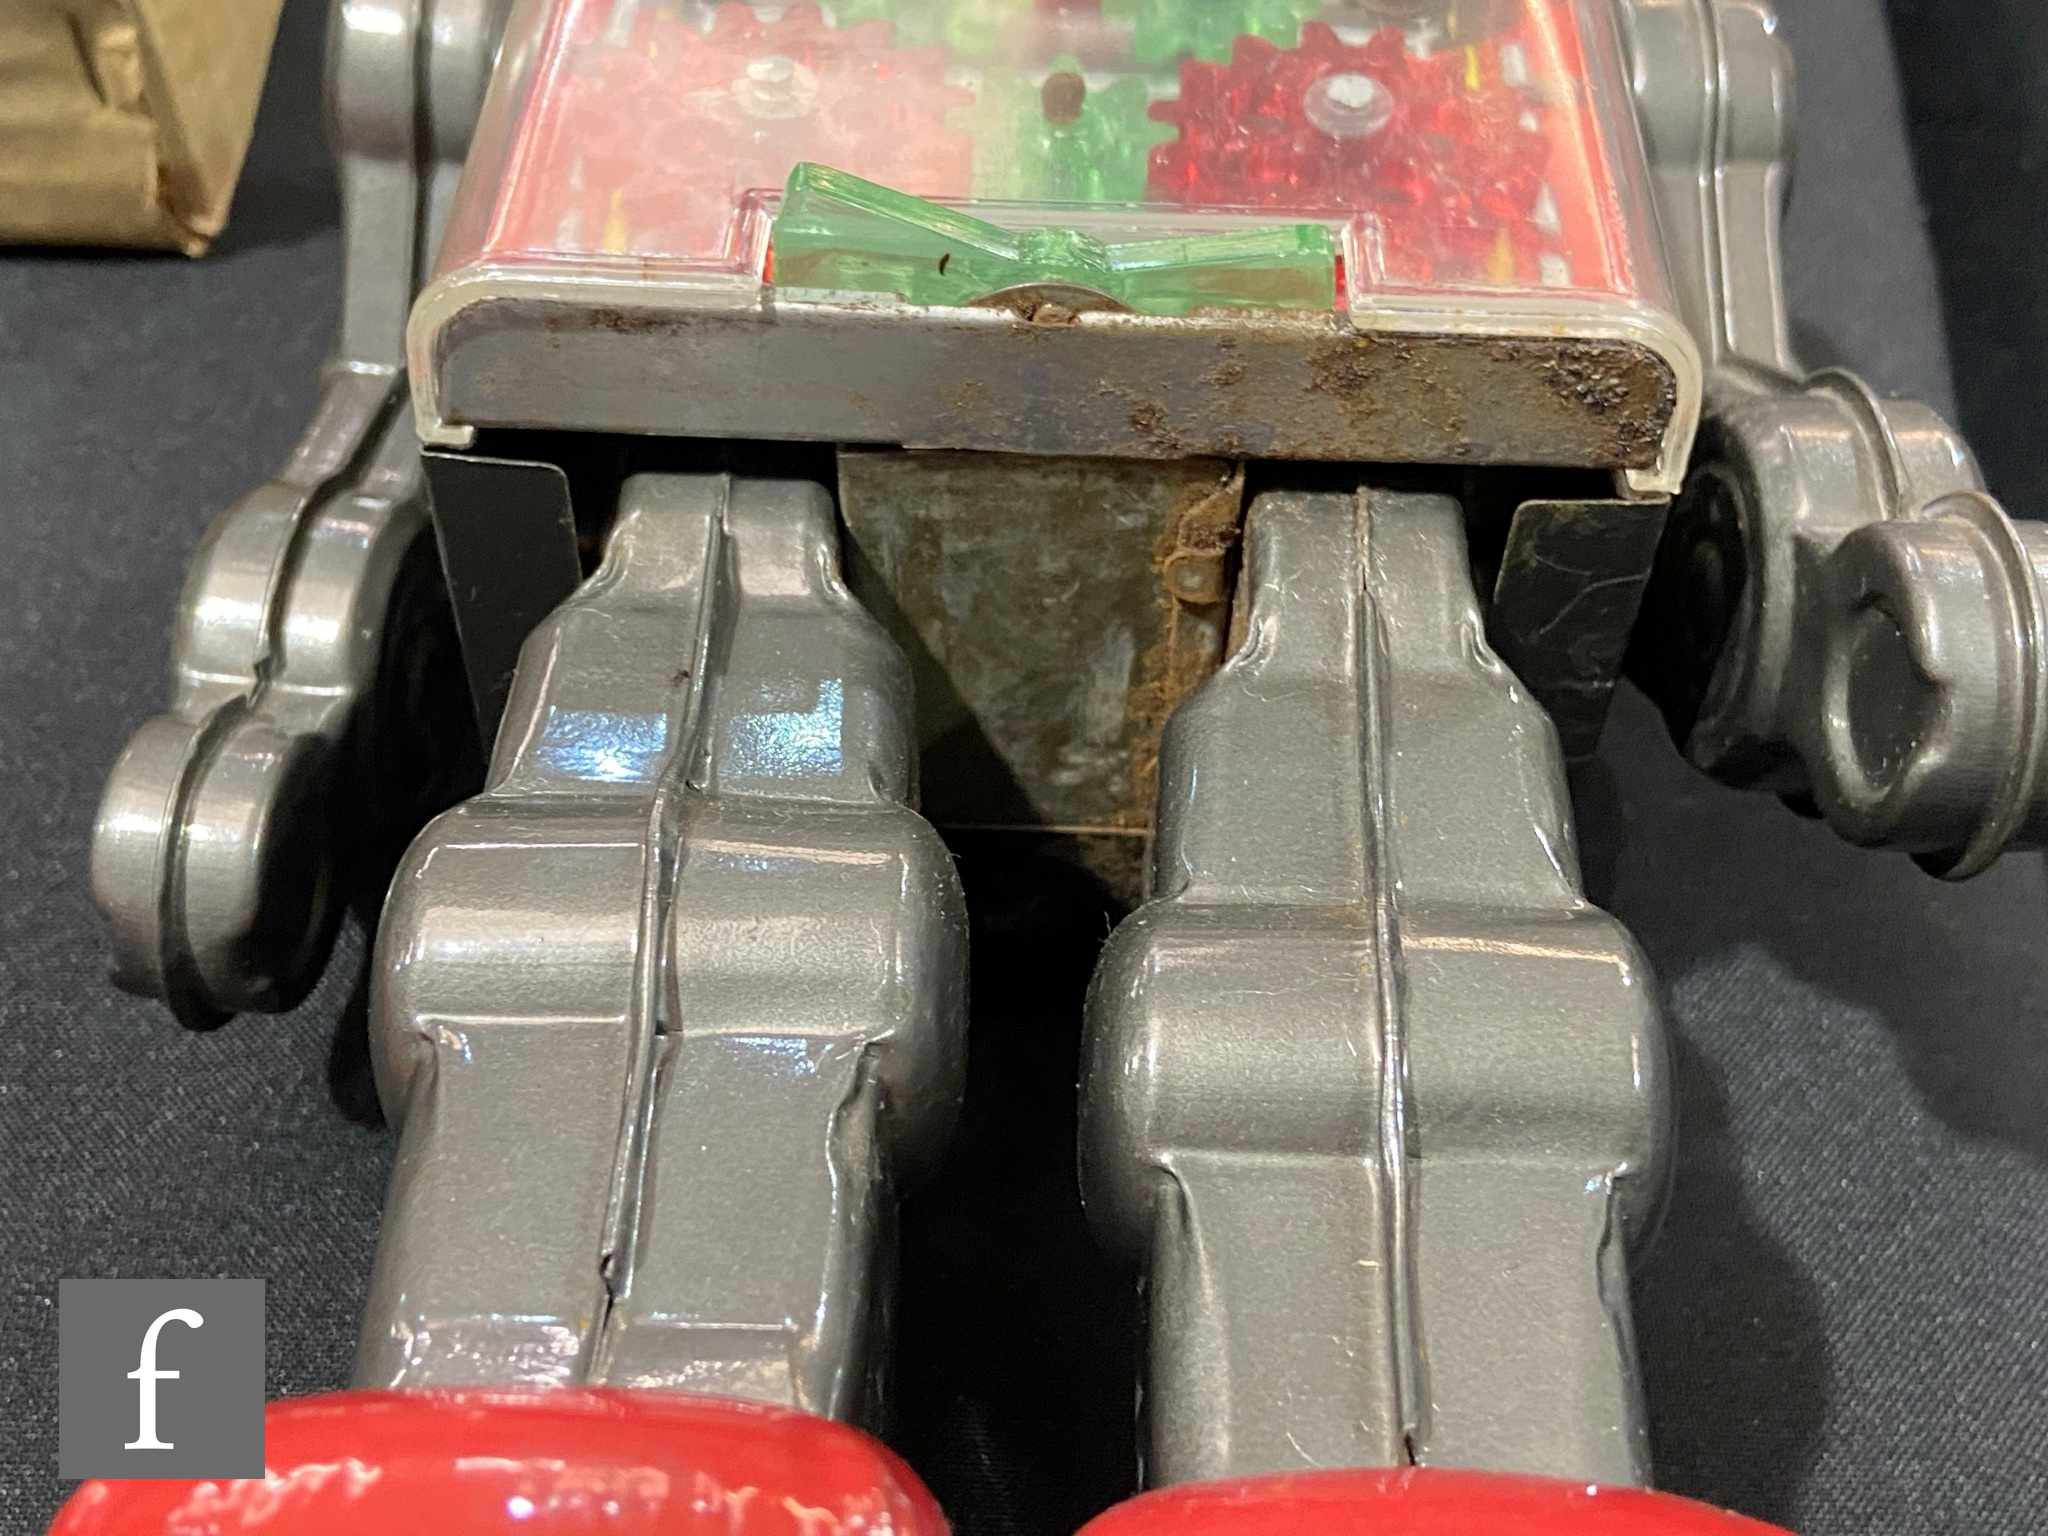 A Japanese Horikawa Machine Robot, tinplate and plastic robot in picture box with inner packing - Image 3 of 5